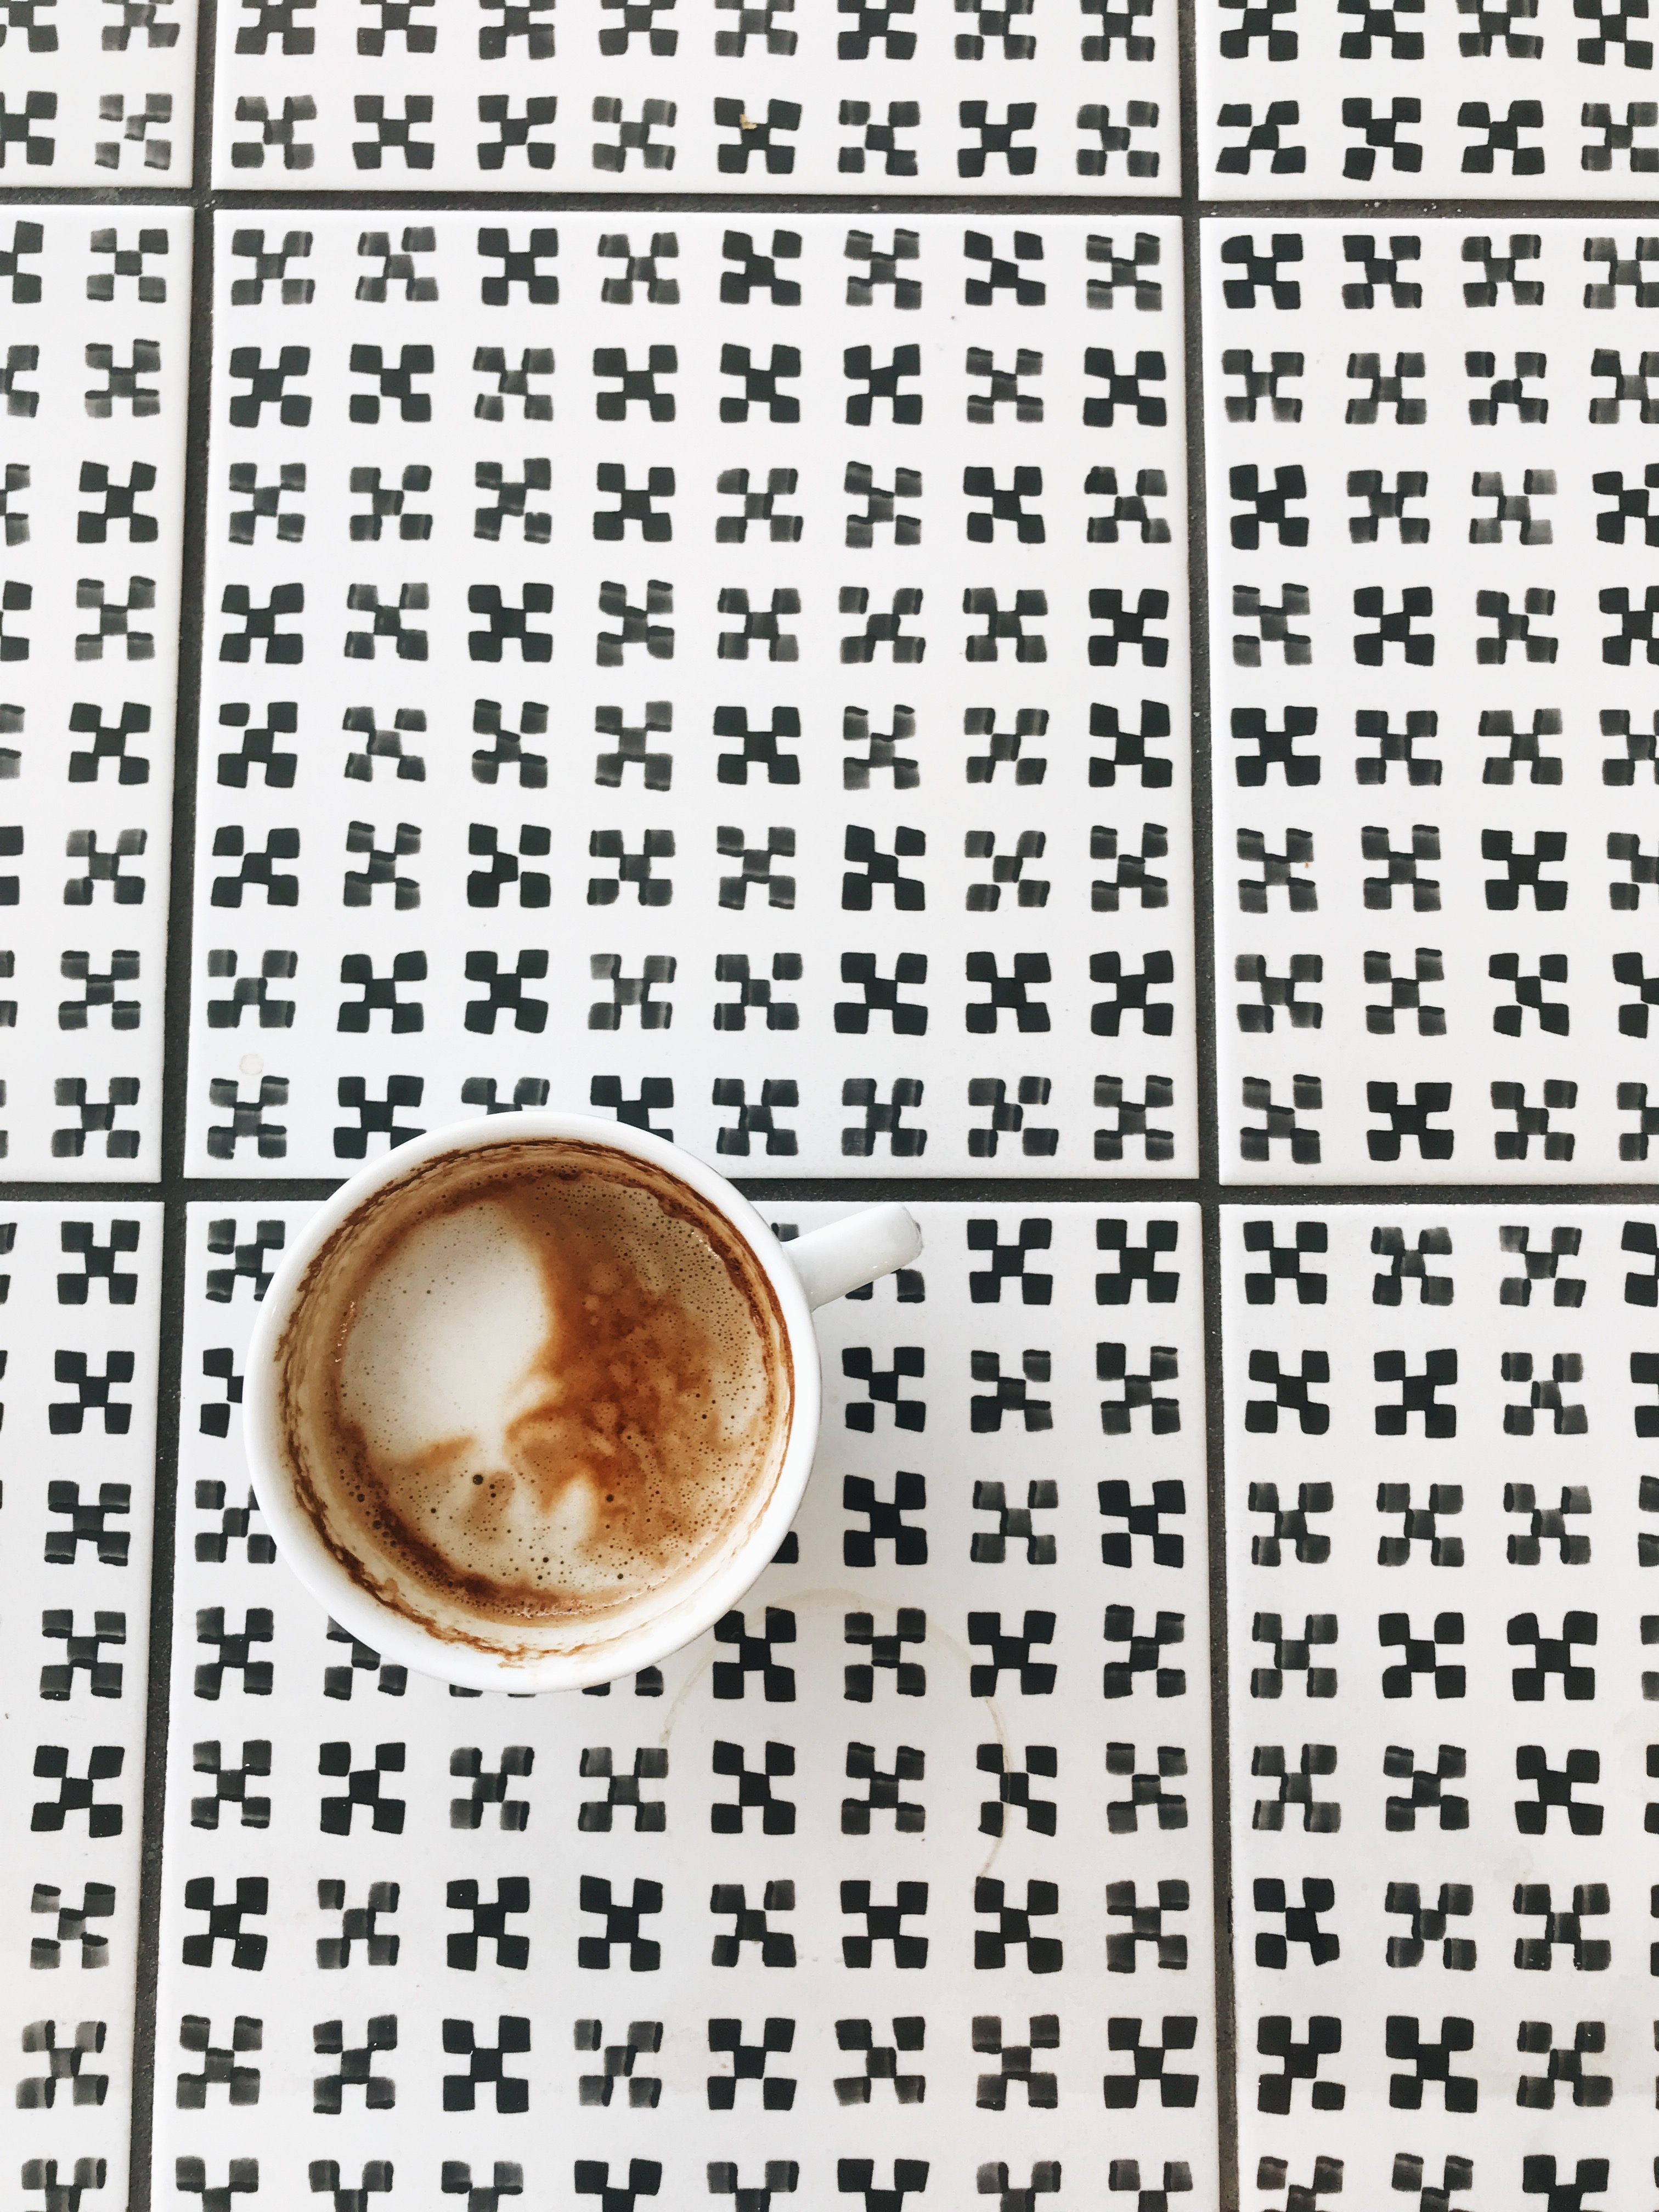 cappucino and tile